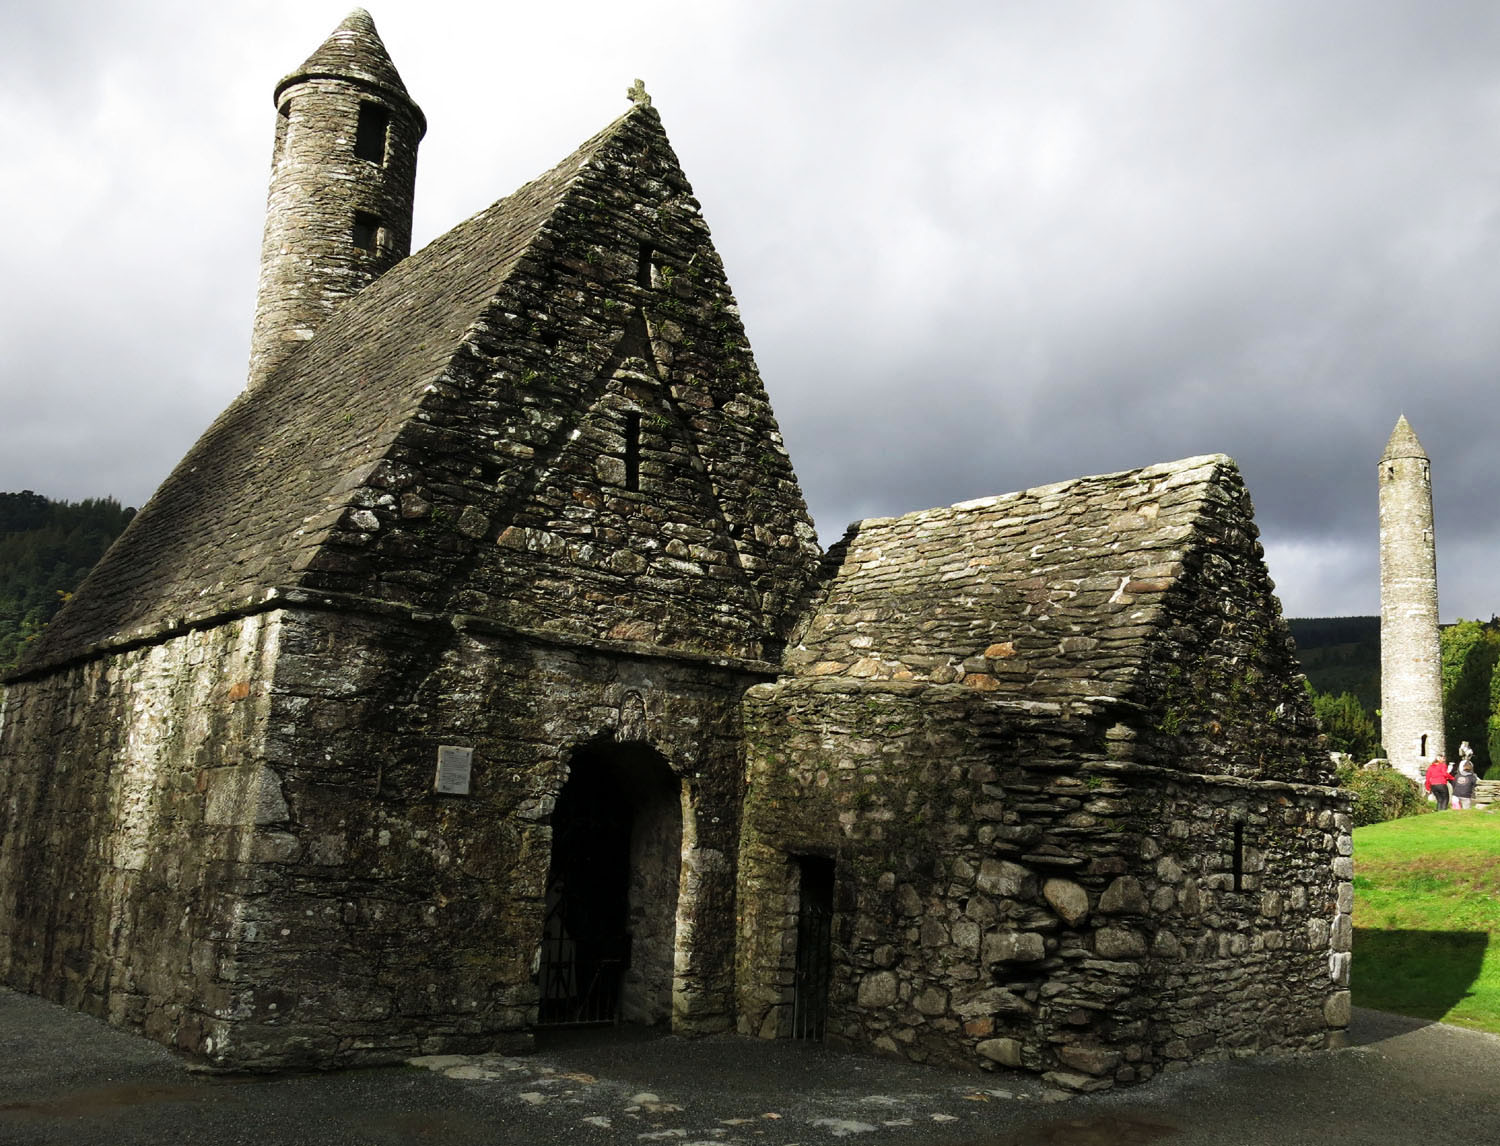 Ireland-Sights-And-Scenery-Glendalough-Church-Tower